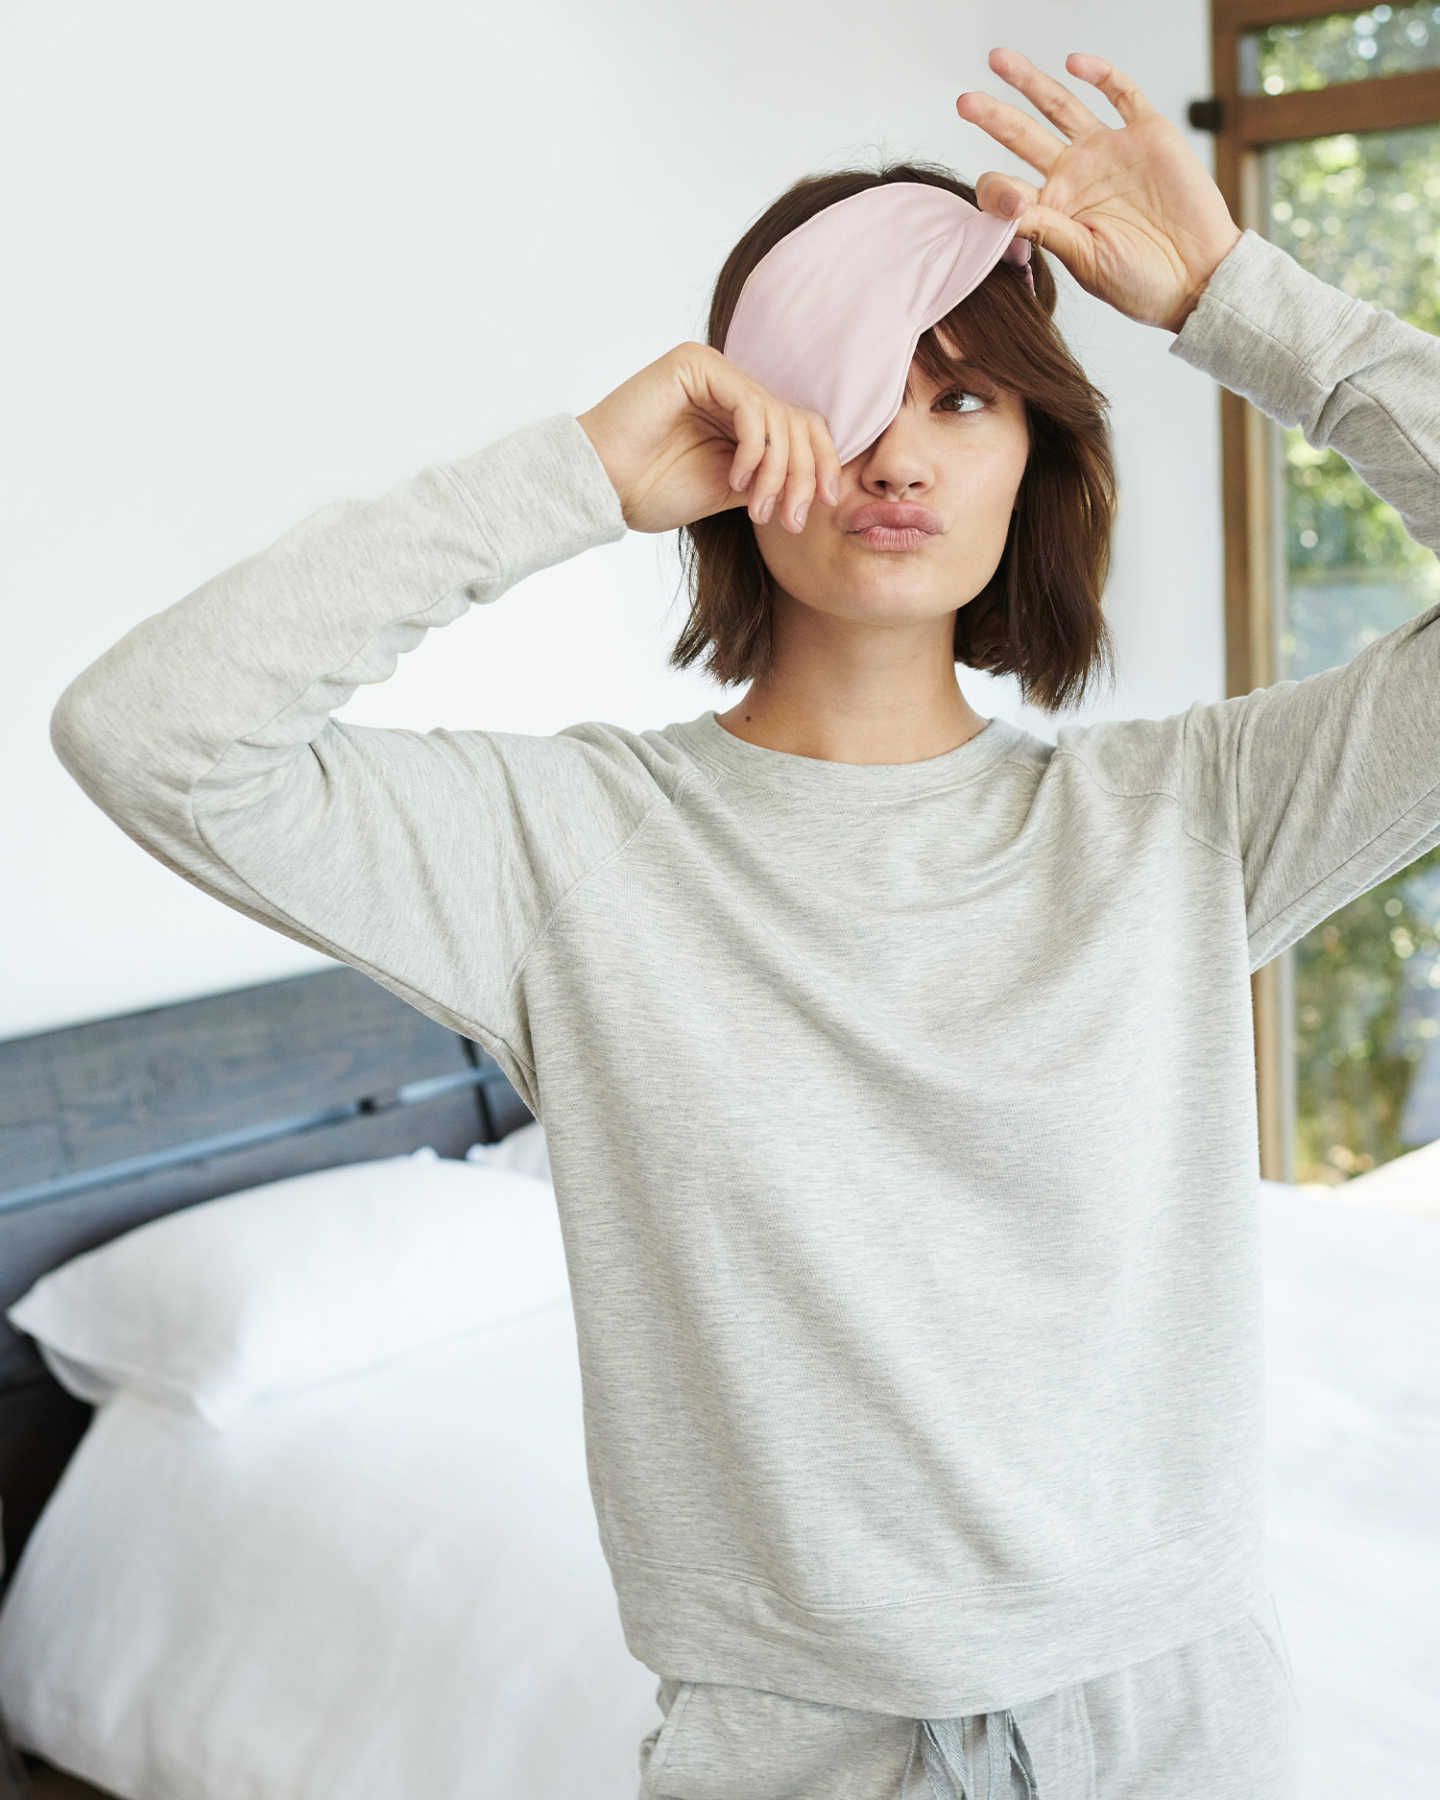 You May Also Like - Mulberry Silk Beauty Sleep Mask - Blush Pink